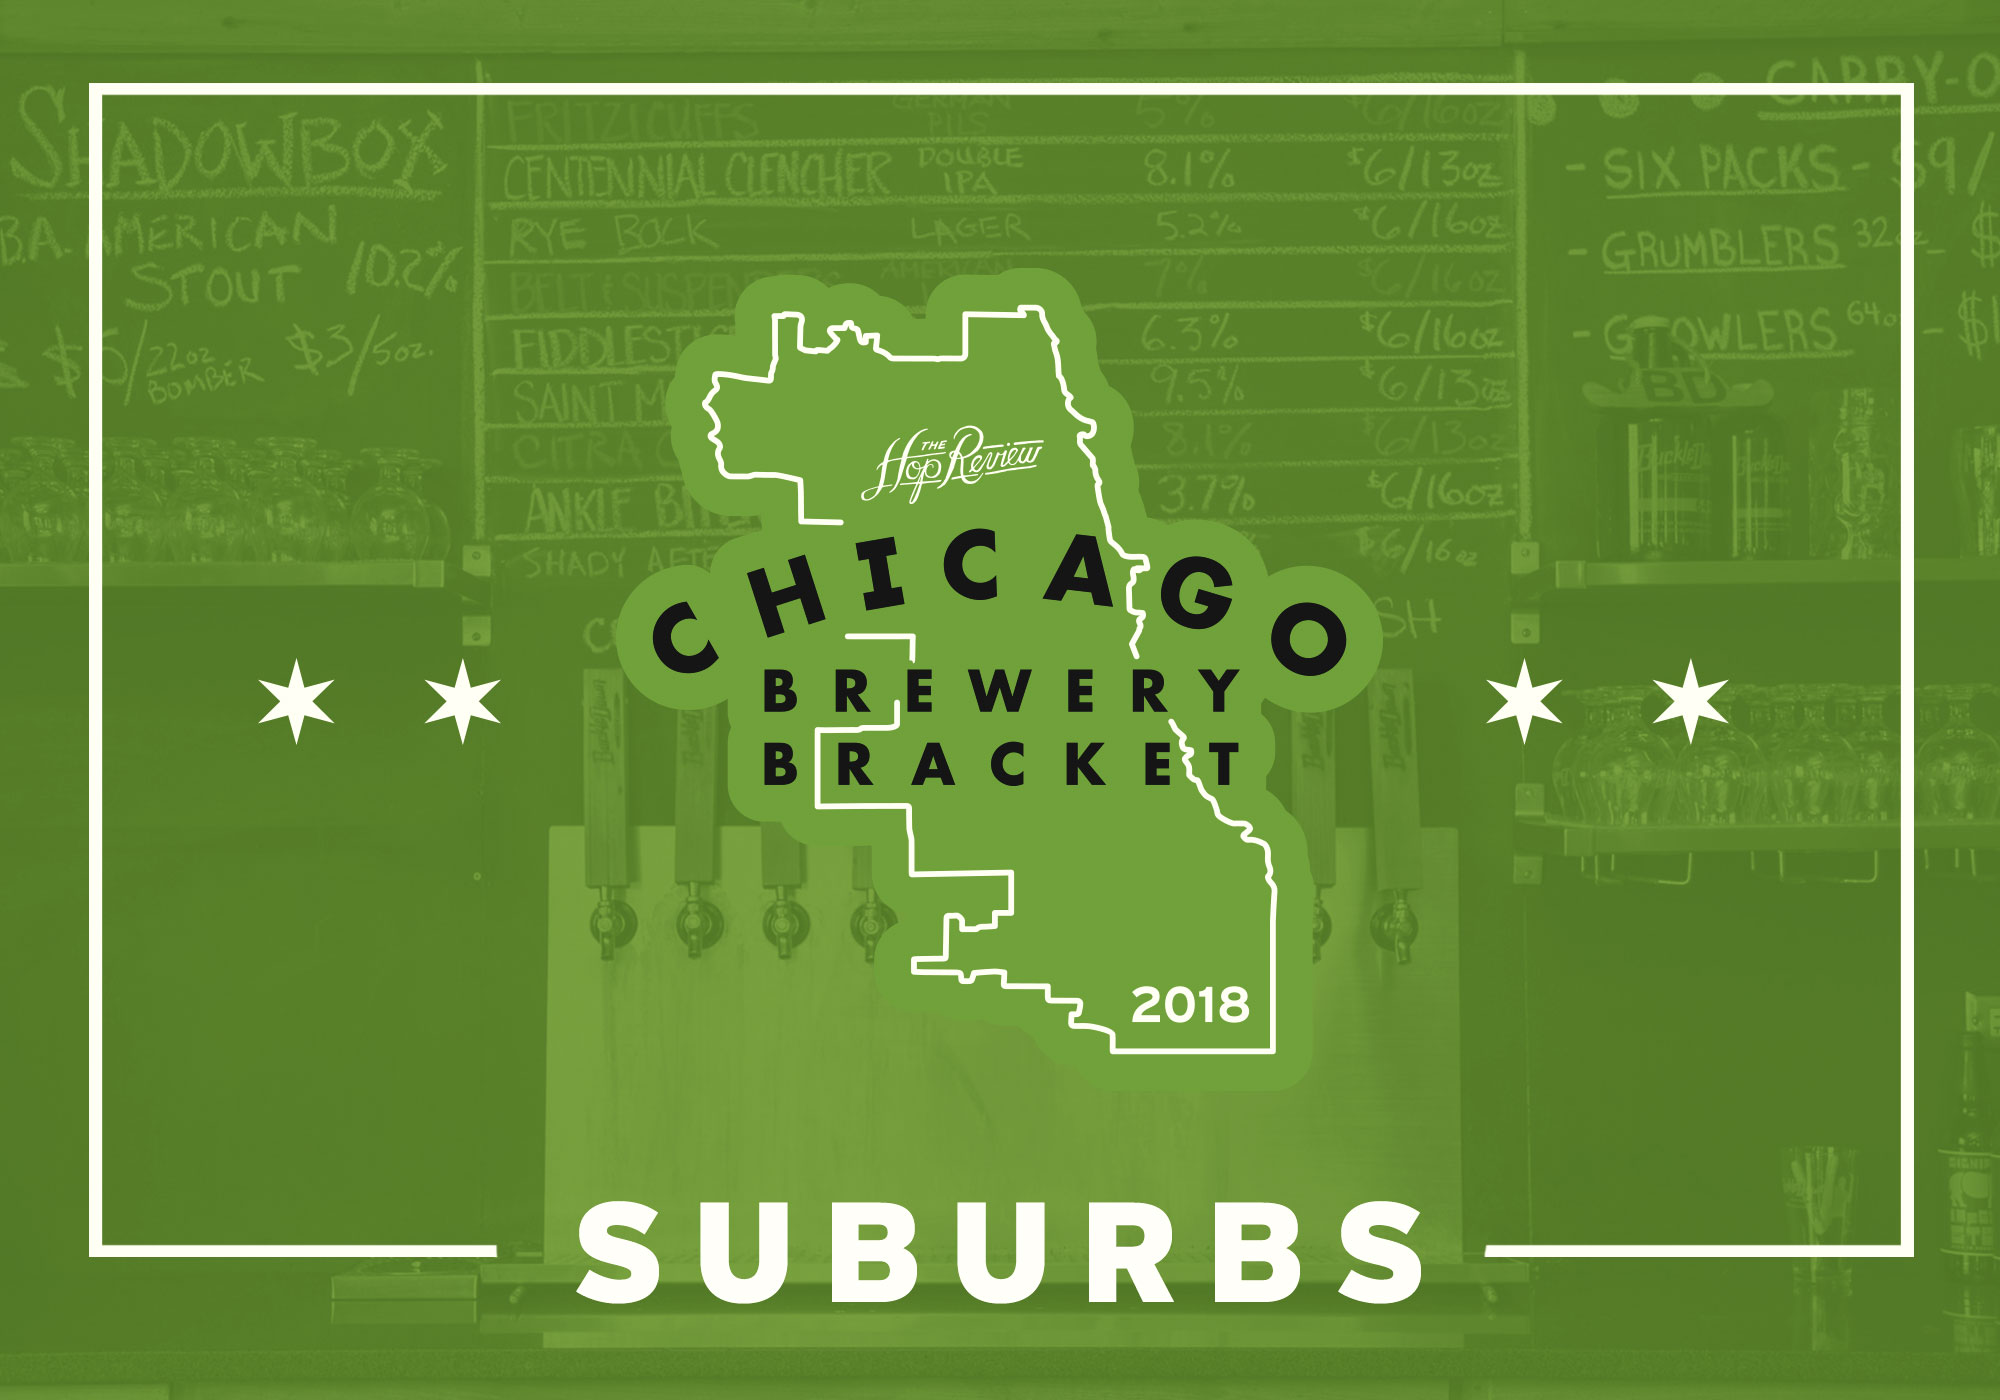 2018 Chicago Brewery Bracket: Suburbs – Rd. 1